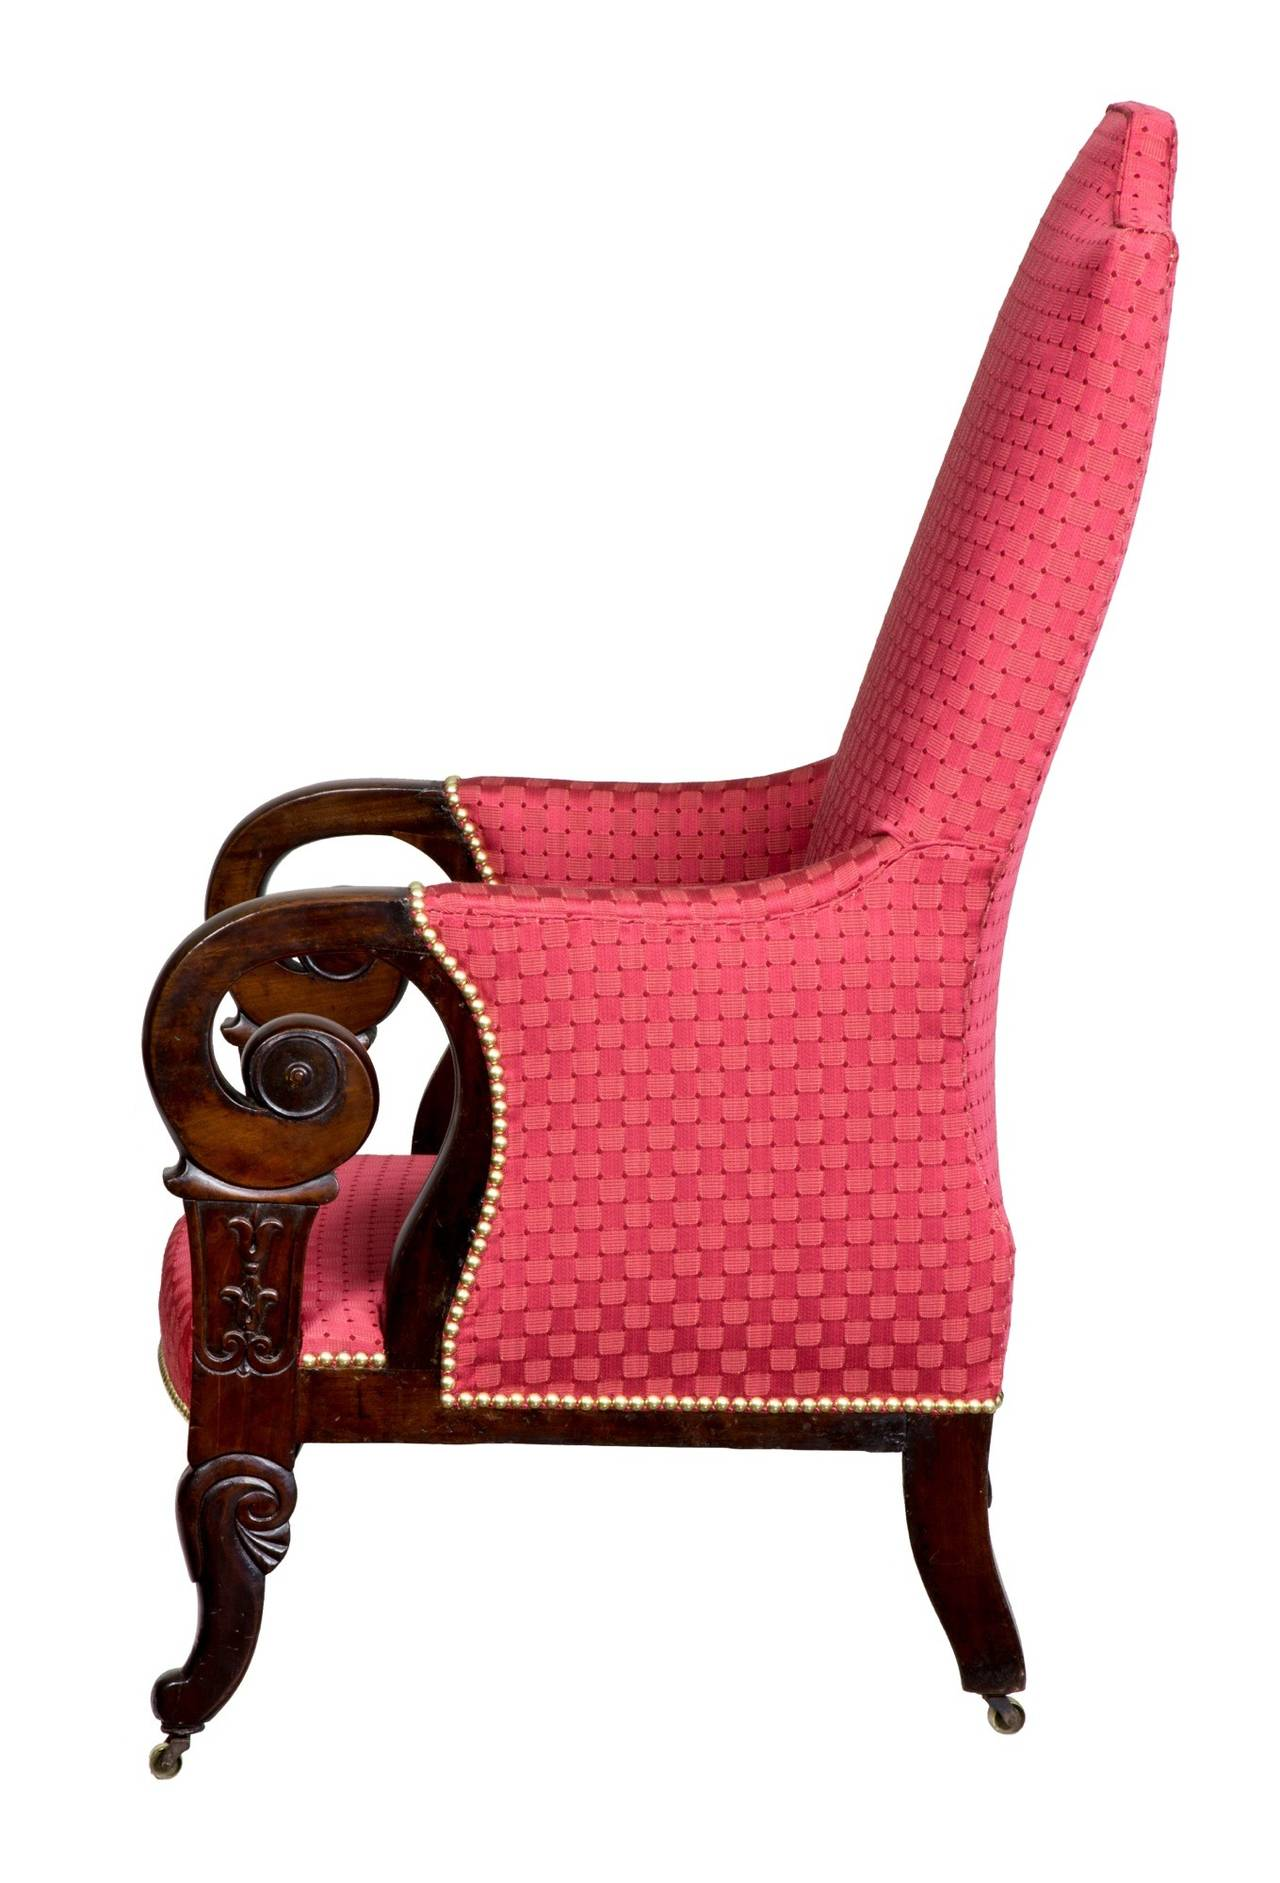 This is an interesting chair. The wood is heavy, dark, dense mahogany and is very heavy. The arms and their supports are beautifully crafted, as are the legs. Of particular interest is the back crest of this chair. These are quite rare and relates